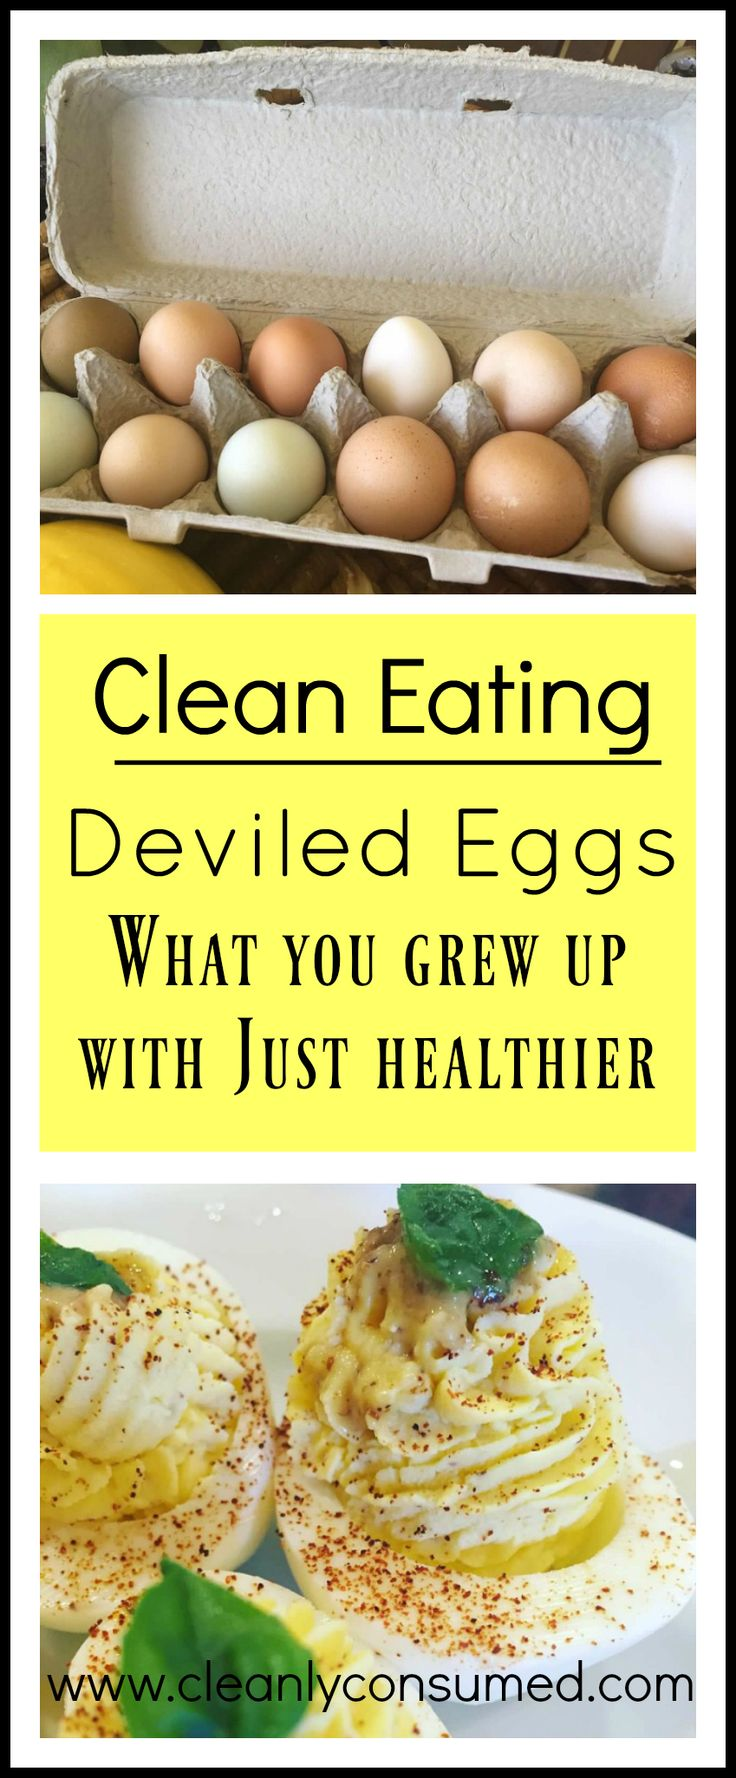 The Deviled Eggs you grew up with... only healthier!